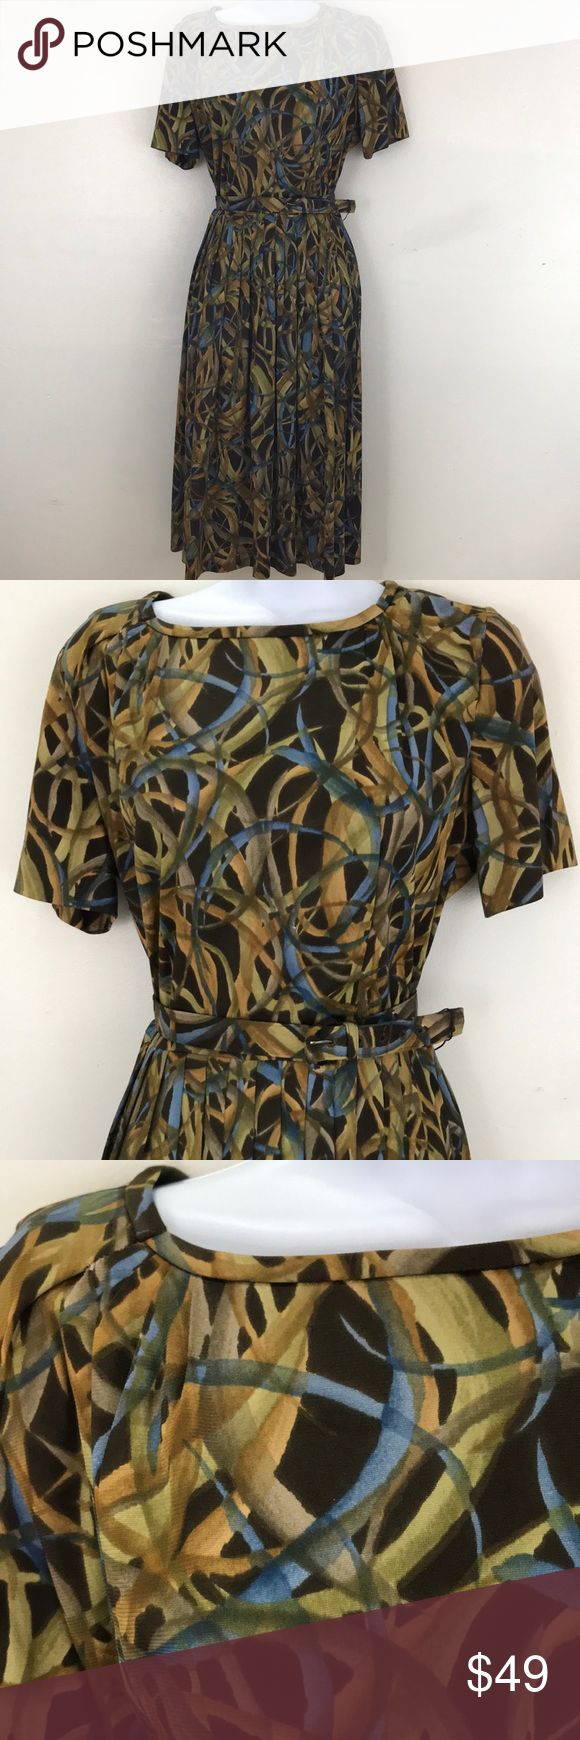 """Stunning vintage dress. Circa 1950's/60's. Wonderful print and colors, Browns - blues and greens. I'm sure this is acetate. Farted around collar, short sleeves, belt, full pleated skirt. No tags. One flaw shown in pic is a seam that needs to be stitched. Bust 42, waist 30 and length 41"""". The belt has the maker- """"Burlington brand"""" but no size. First hole on belt is 29"""", 30"""", 31"""",32"""" and 33"""". There isn't any give in fabric Burlington Dresses Midi"""